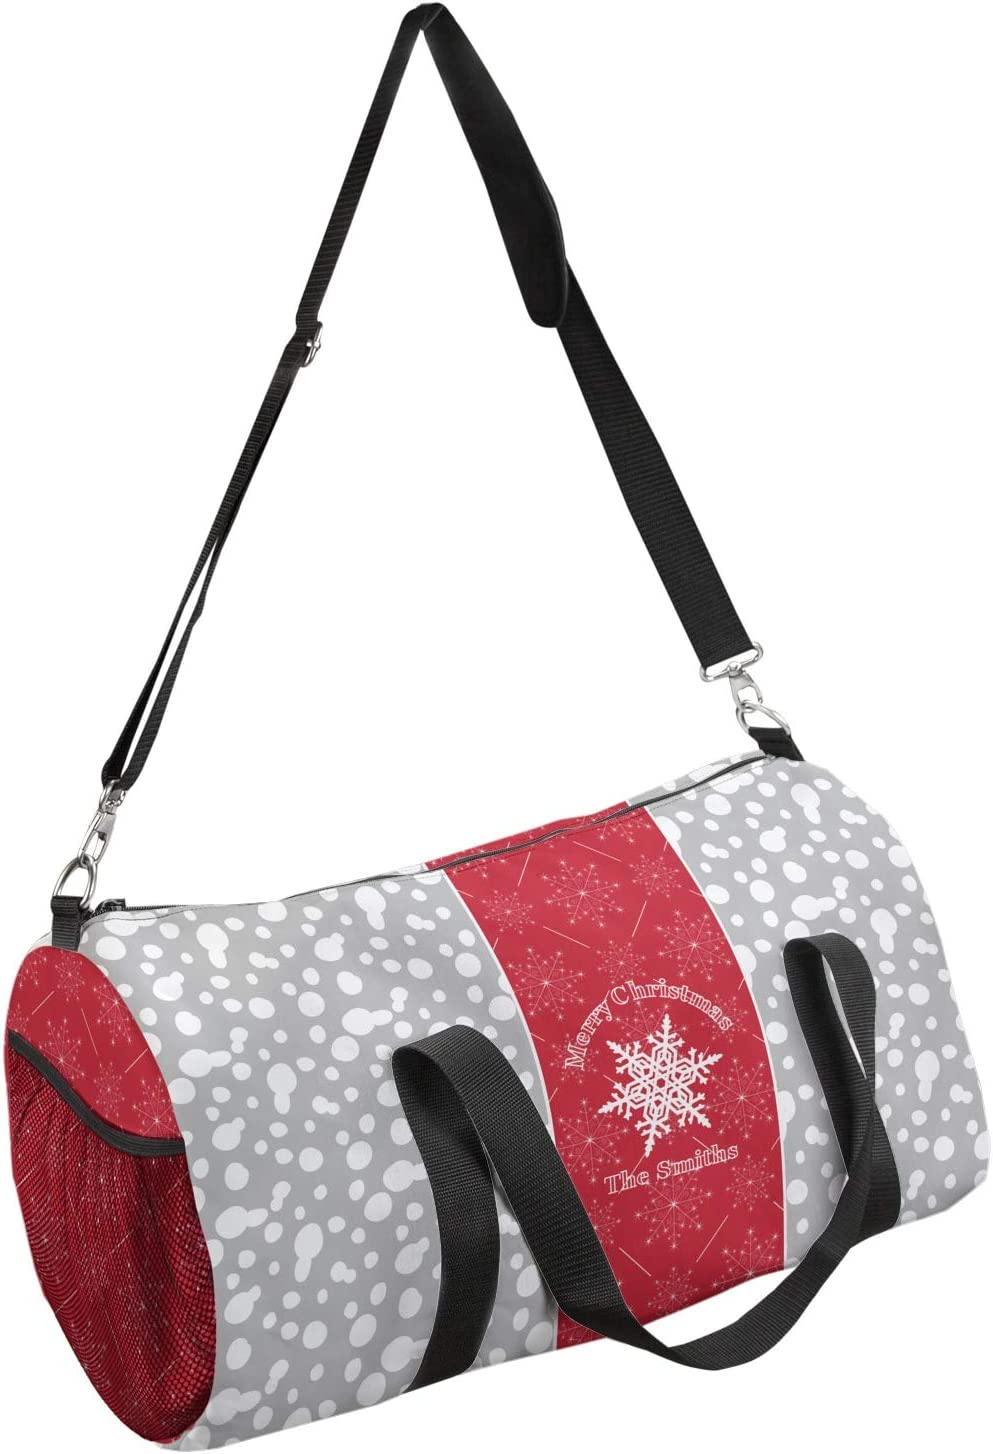 YouCustomizeIt Snowflakes Duffel Bag Personalized